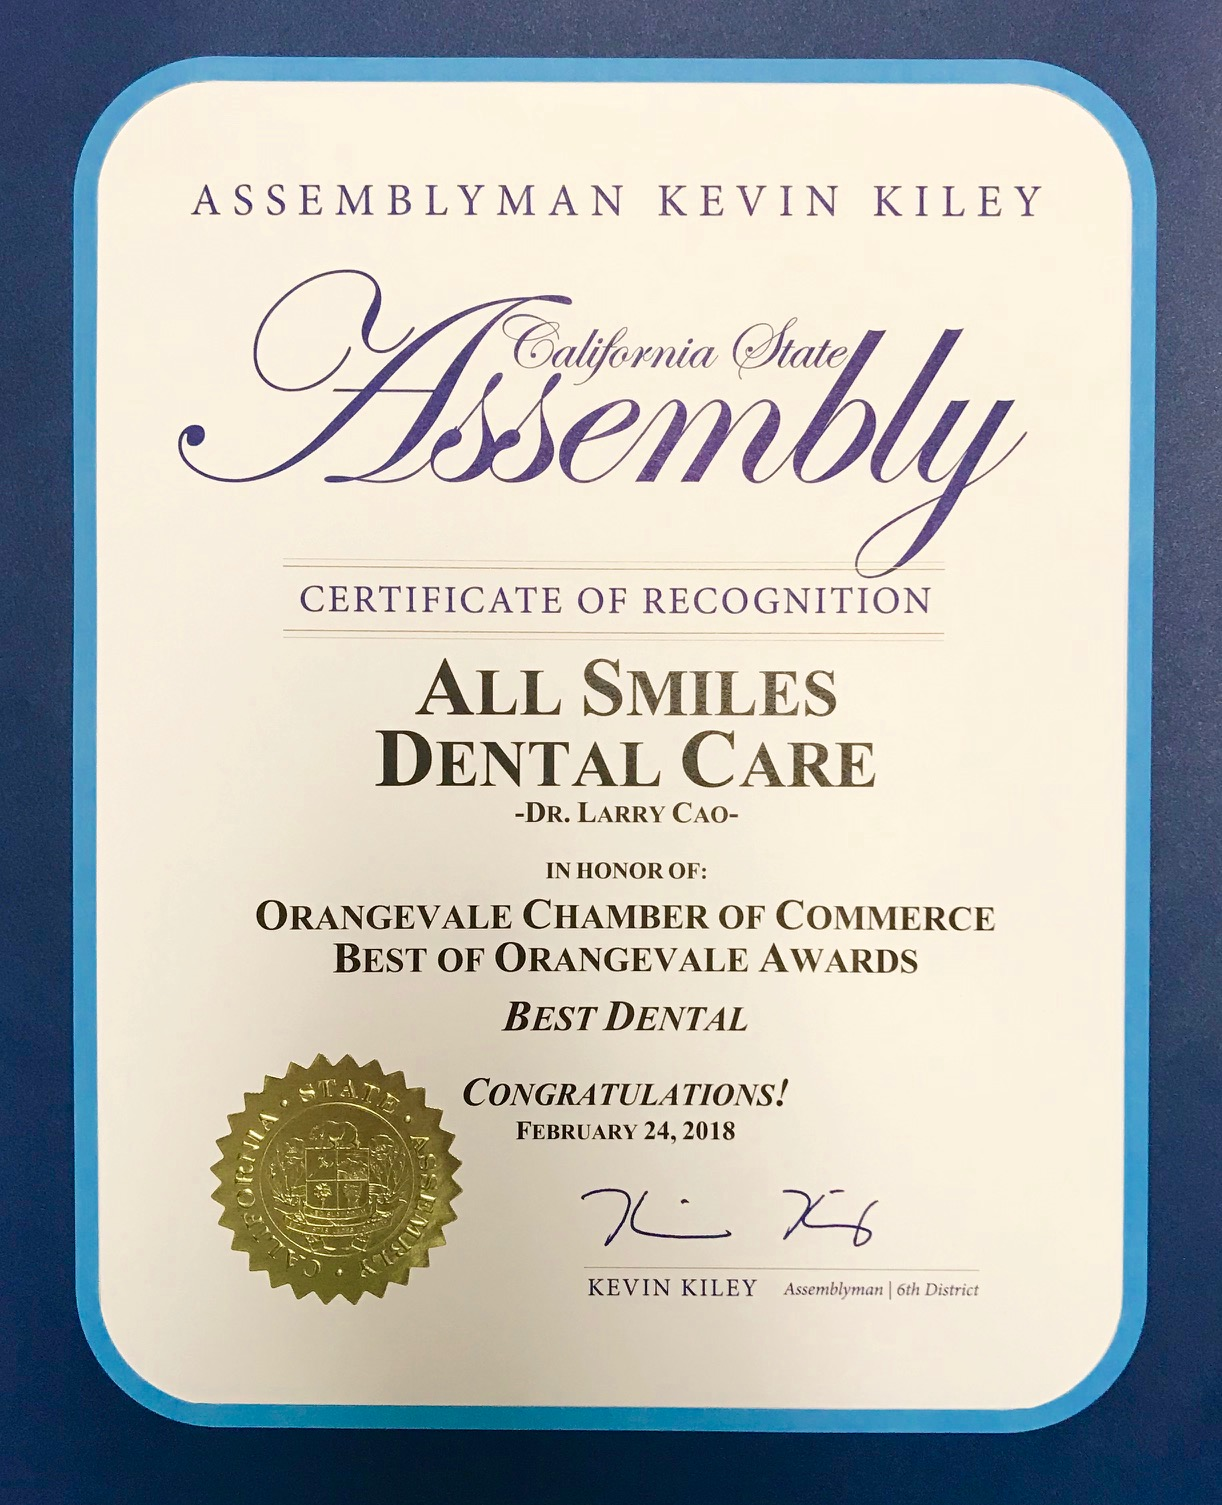 All Smiles Dental Care Dentist in Orangevale